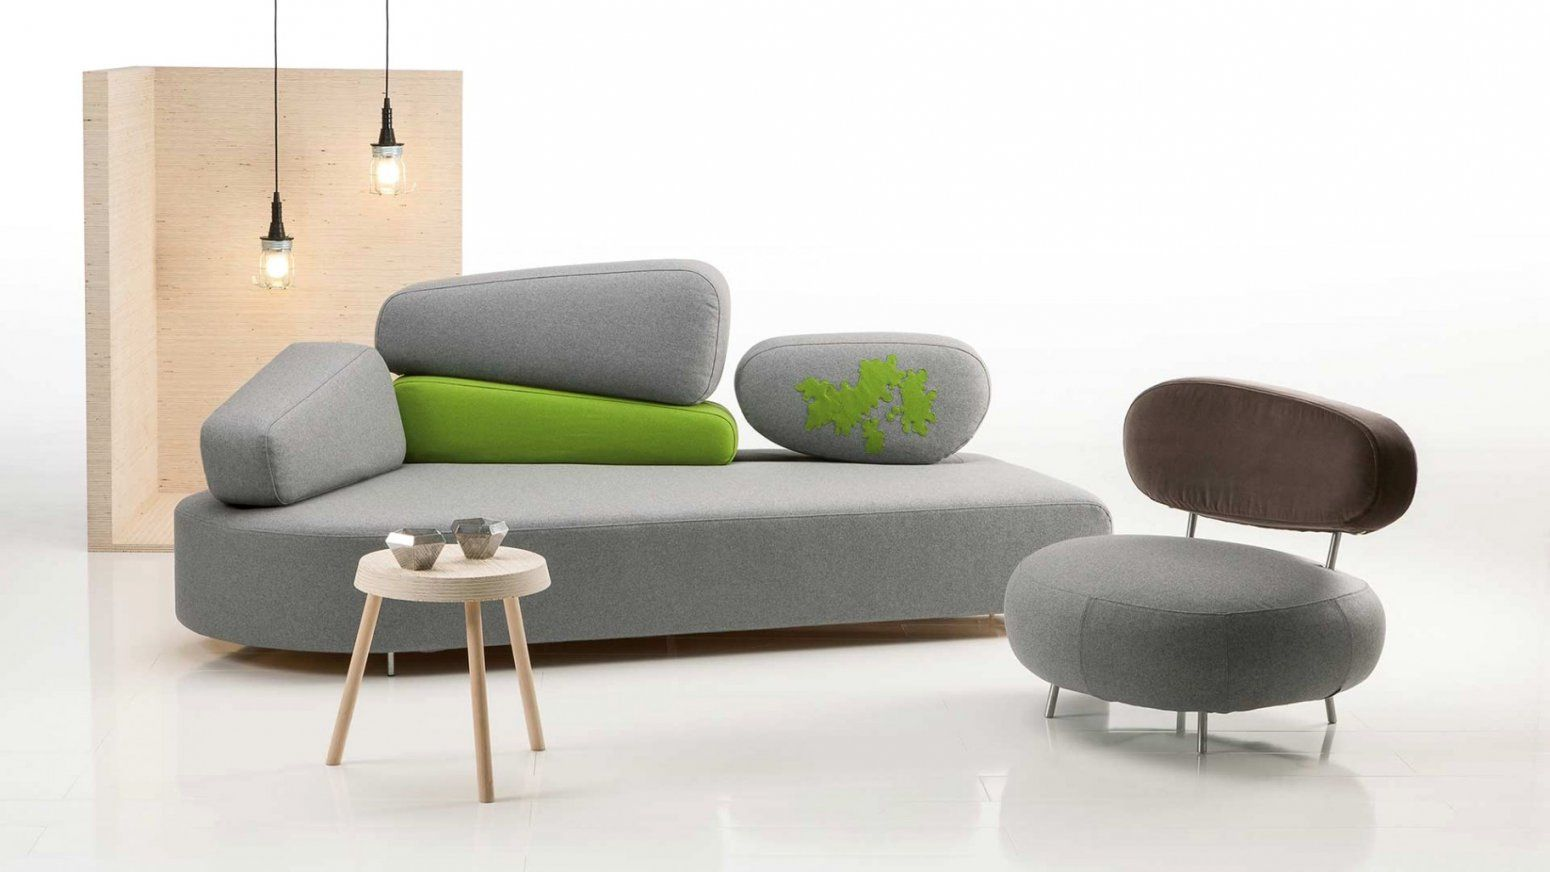 ecksofas f r kleine r ume haus design ideen. Black Bedroom Furniture Sets. Home Design Ideas